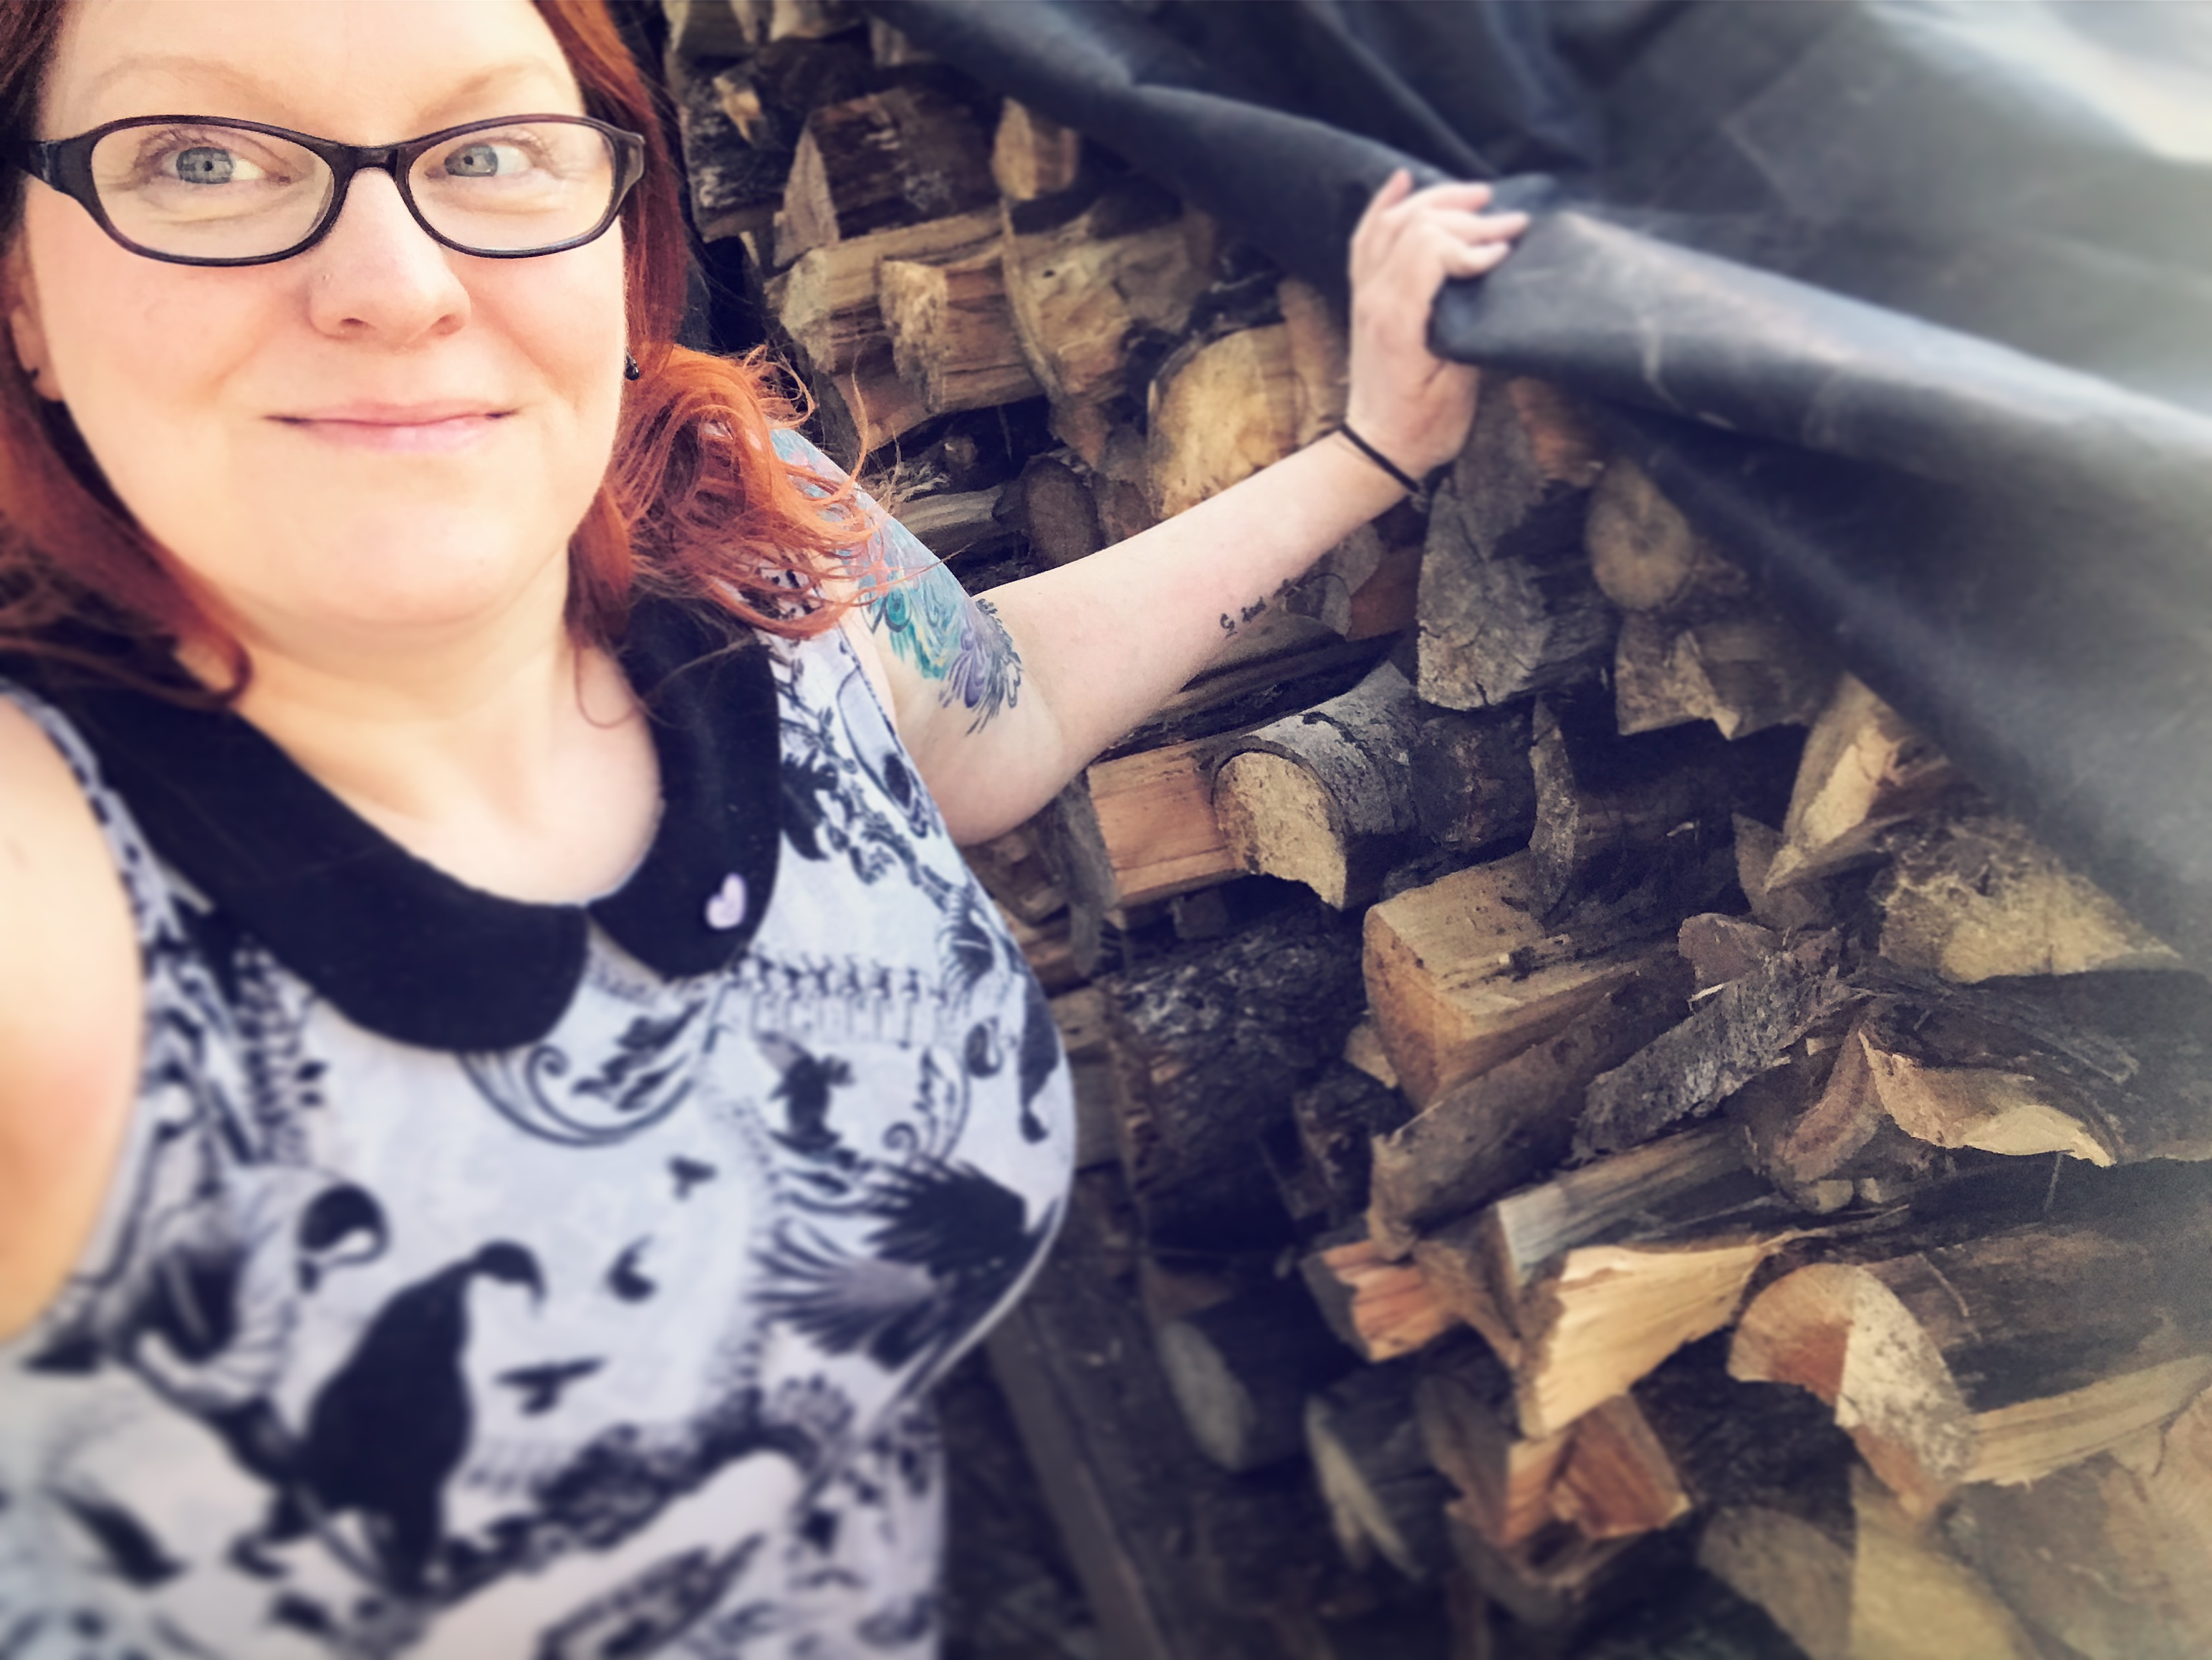 ali and firewood